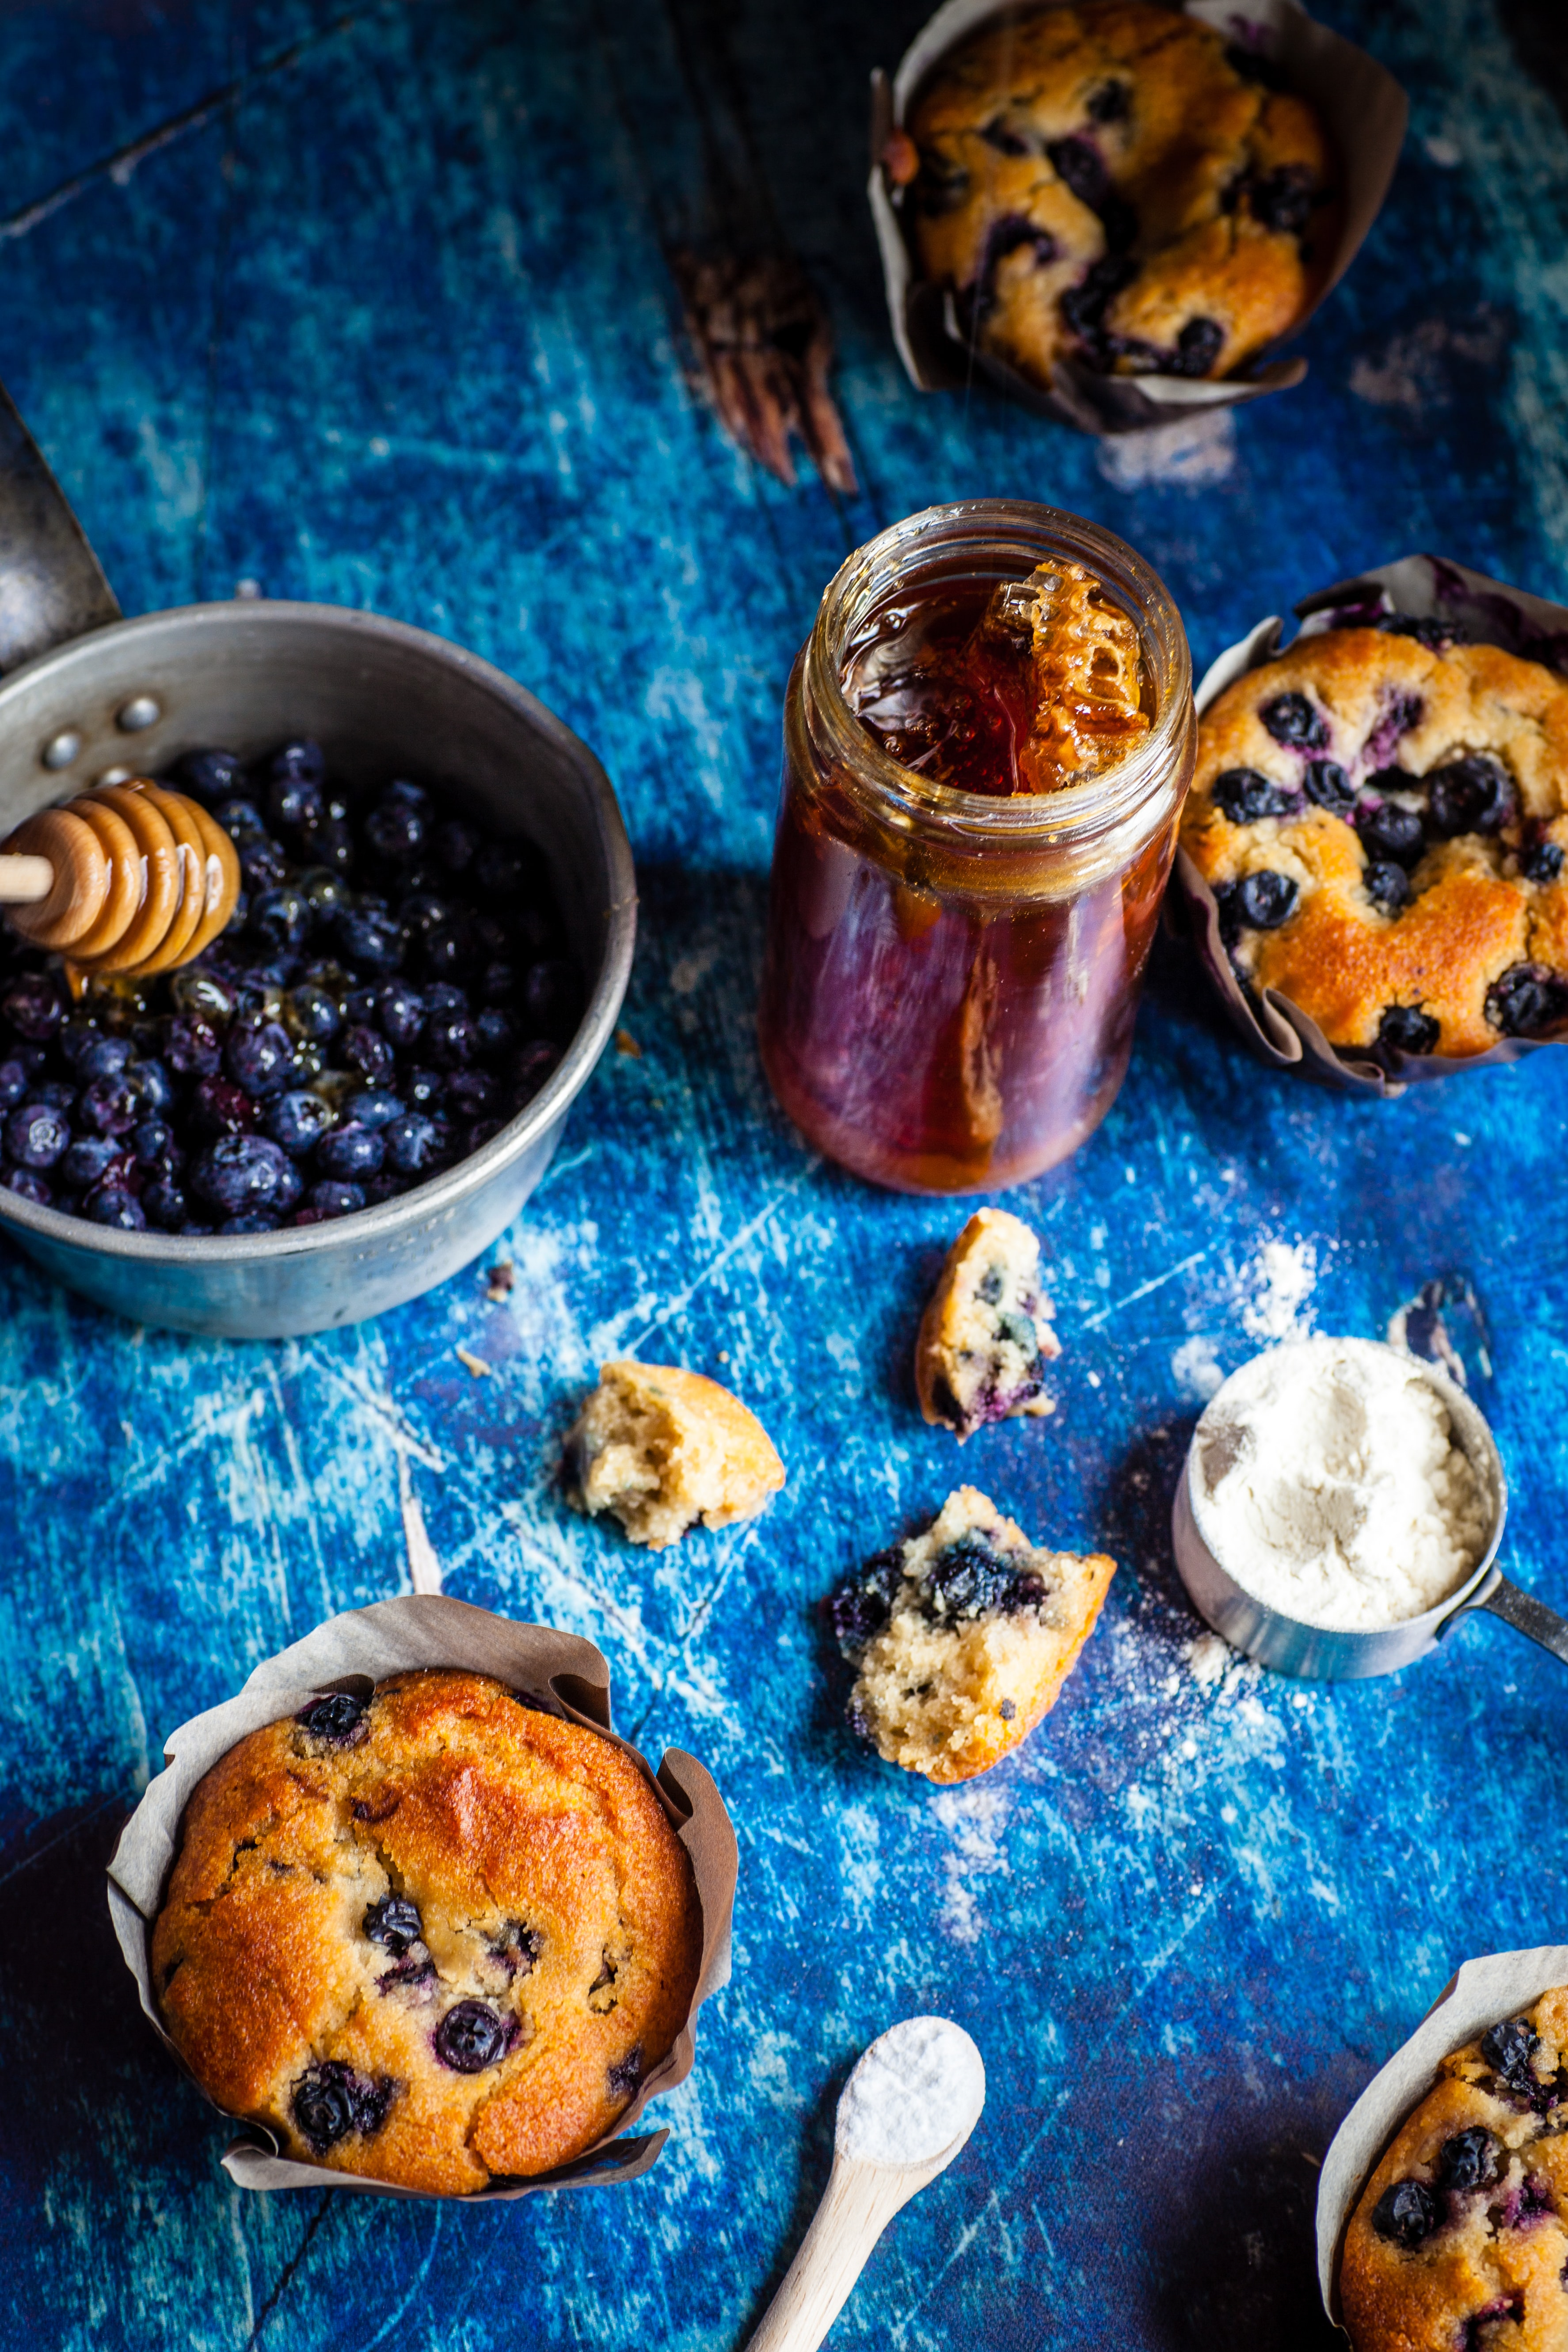 blueberries on gray bowl and muffins